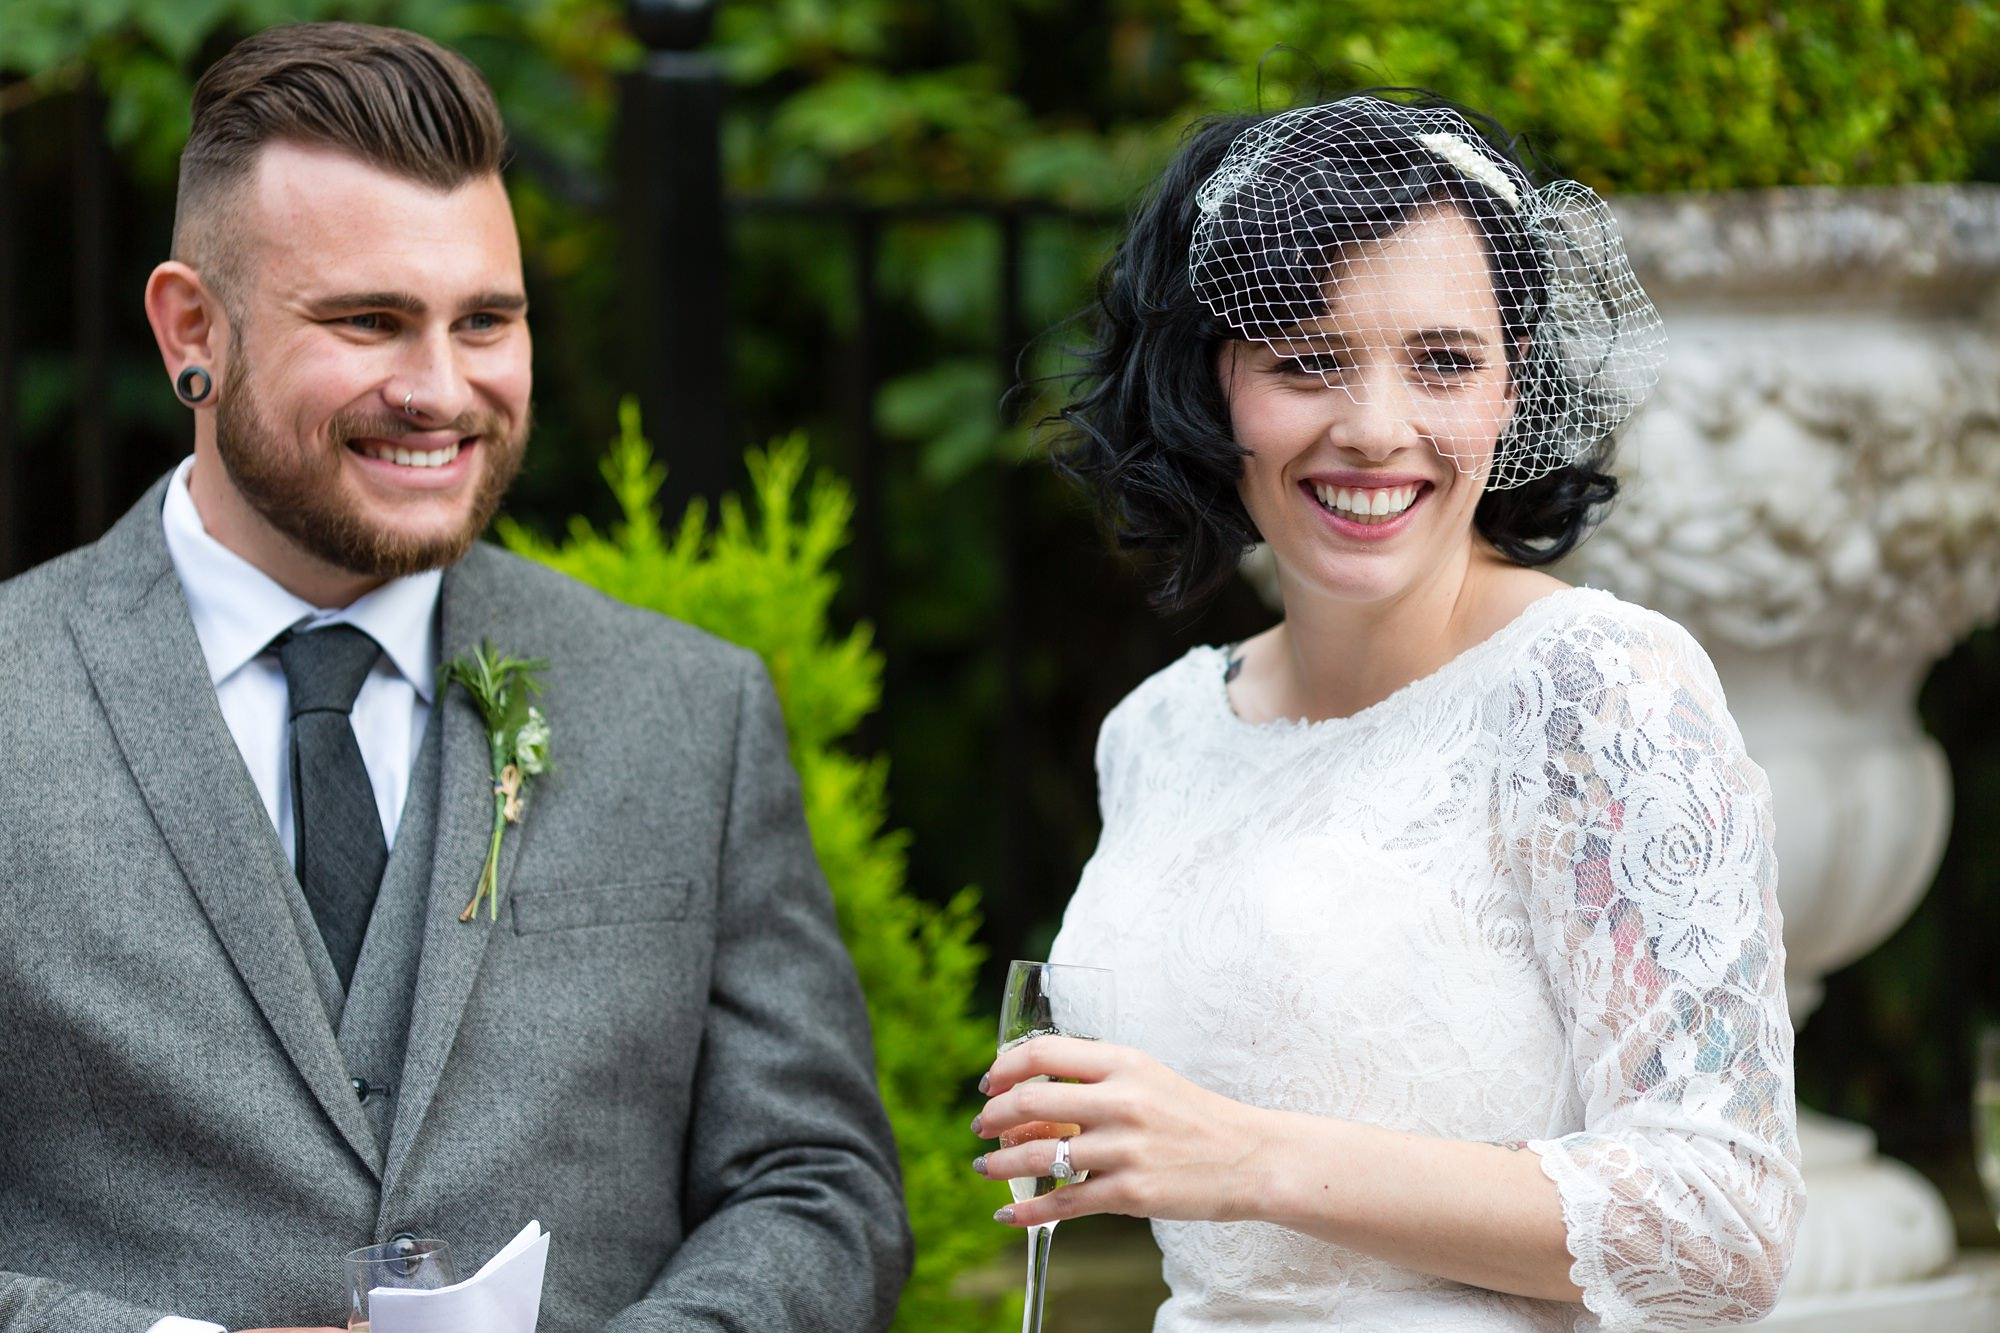 Yorkshire Wedding Photography at Crab and Lobster bride and groom smile during speeches